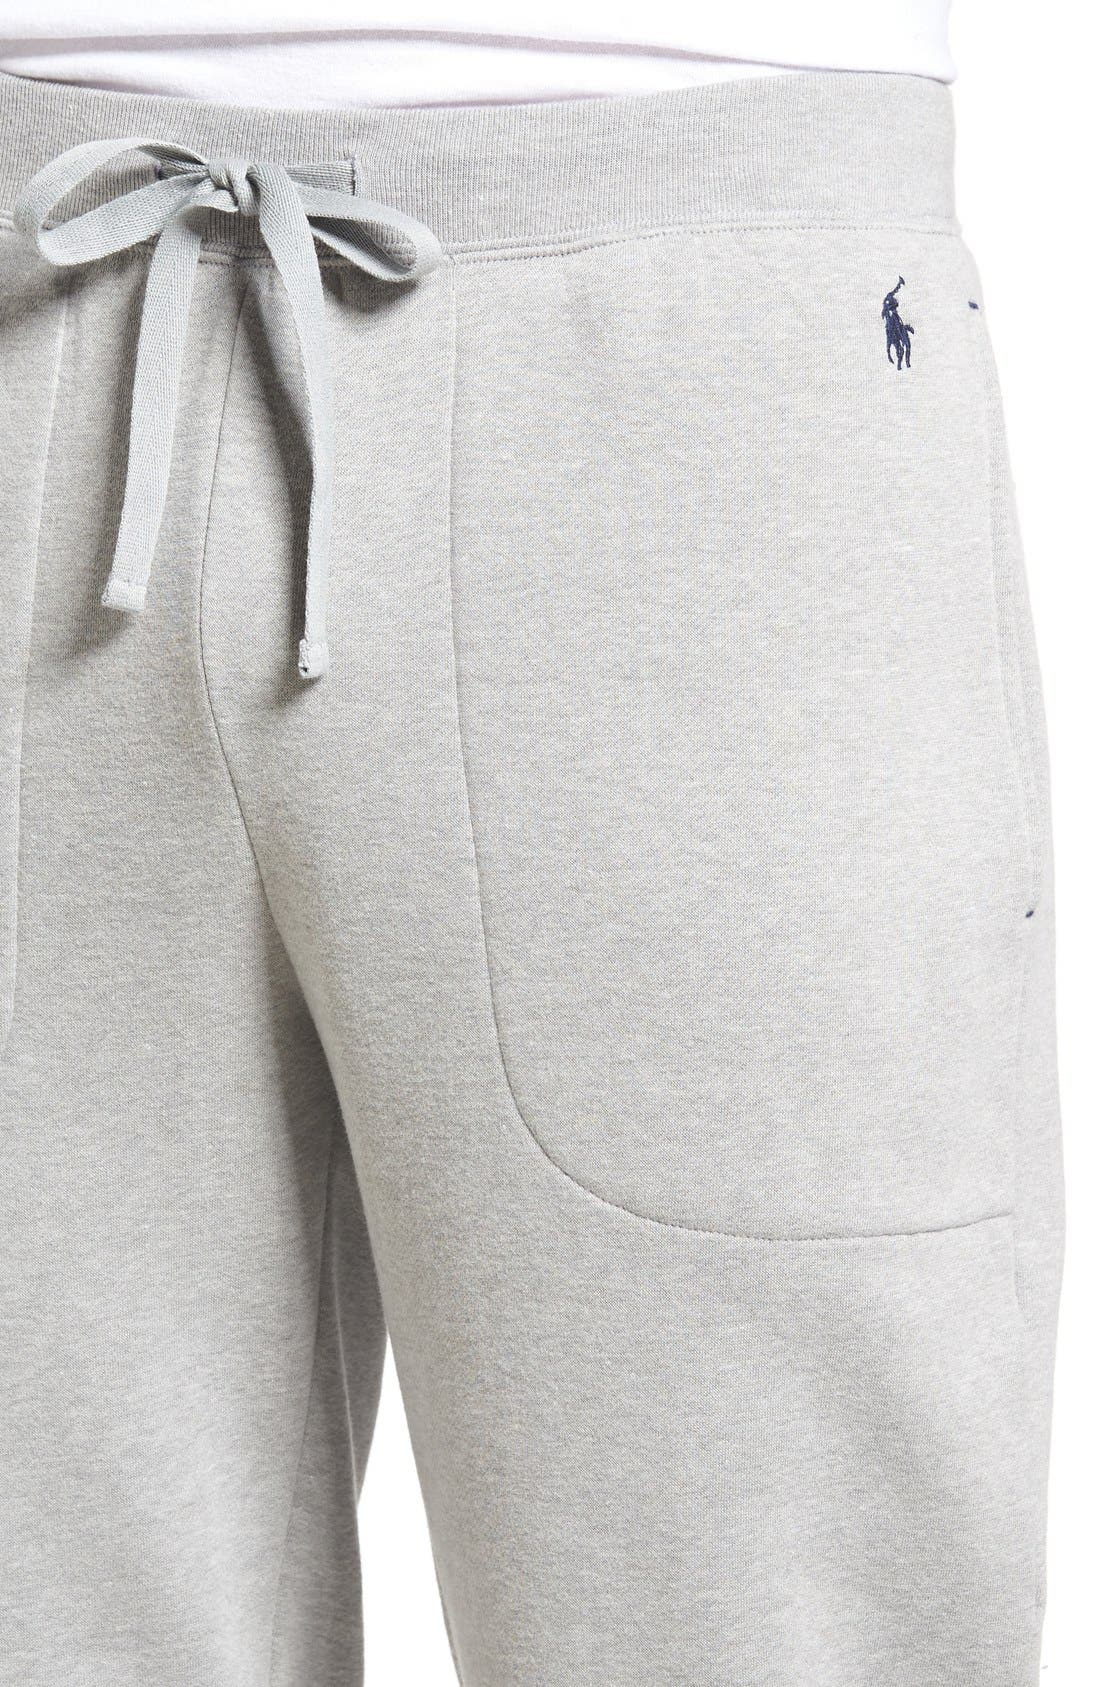 Brushed Jersey Cotton Blend Jogger Pants,                             Alternate thumbnail 10, color,                             ANDOVER HEATHER GREY